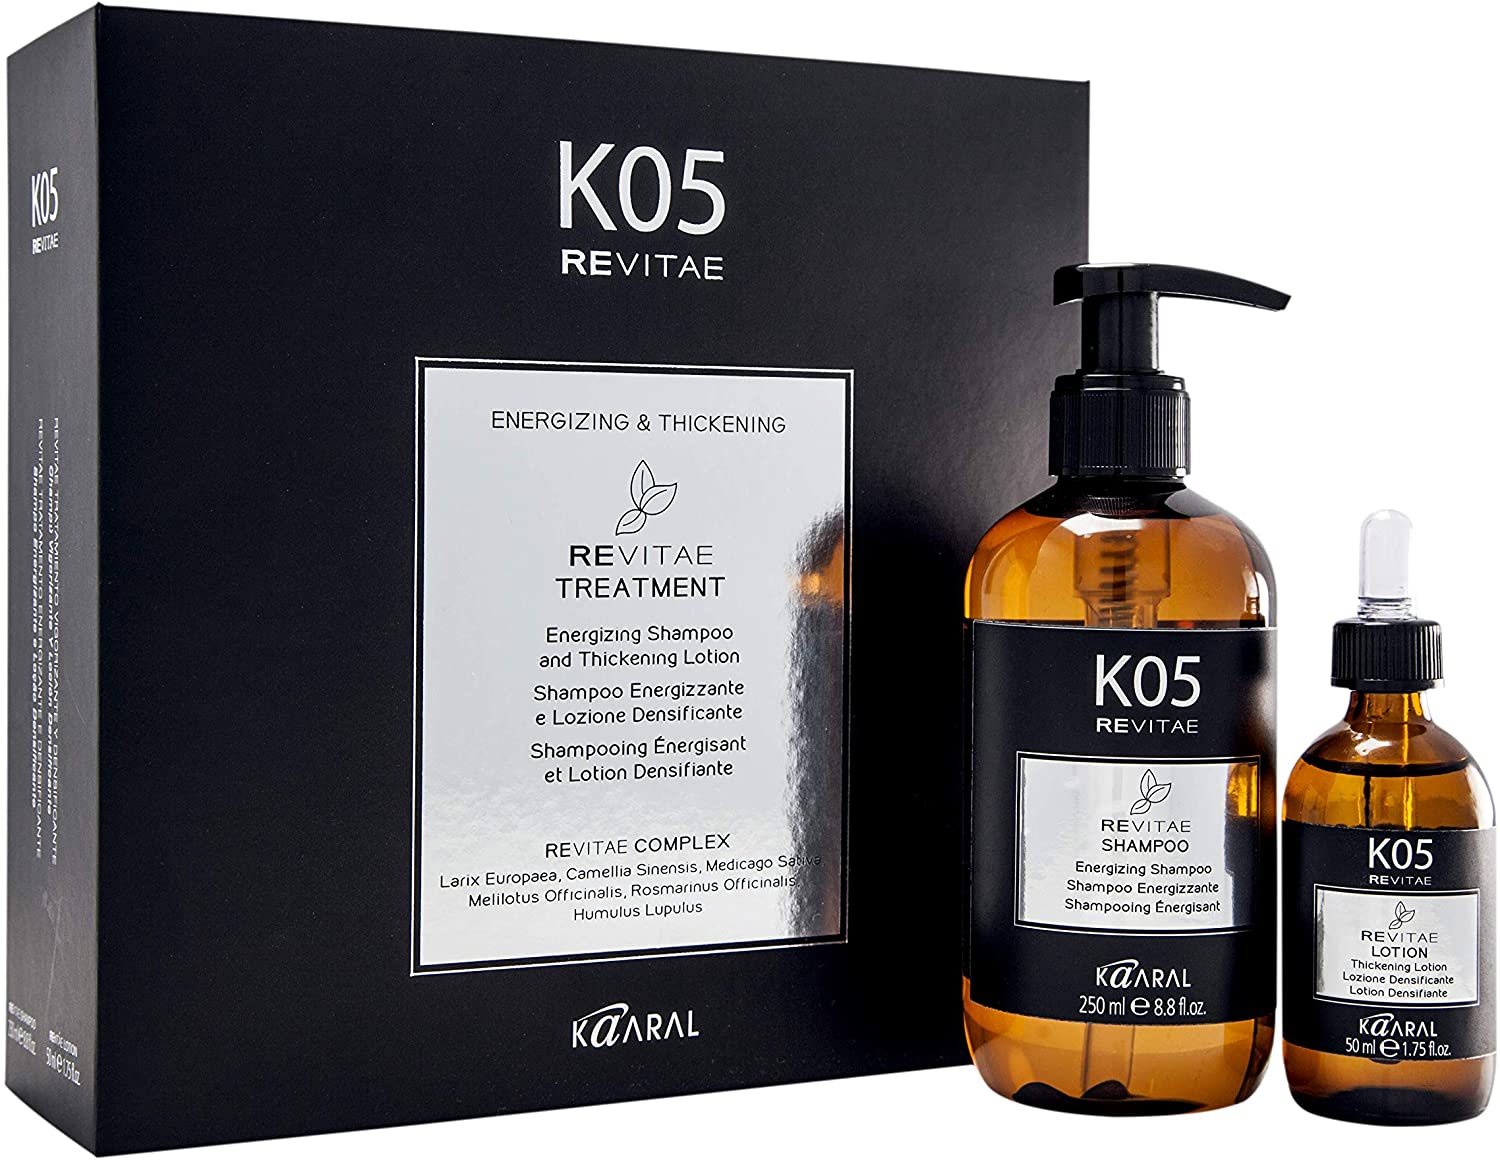 K05 REVITAE Energizing Shampoo & Thickening Lotion Set by KAARAL